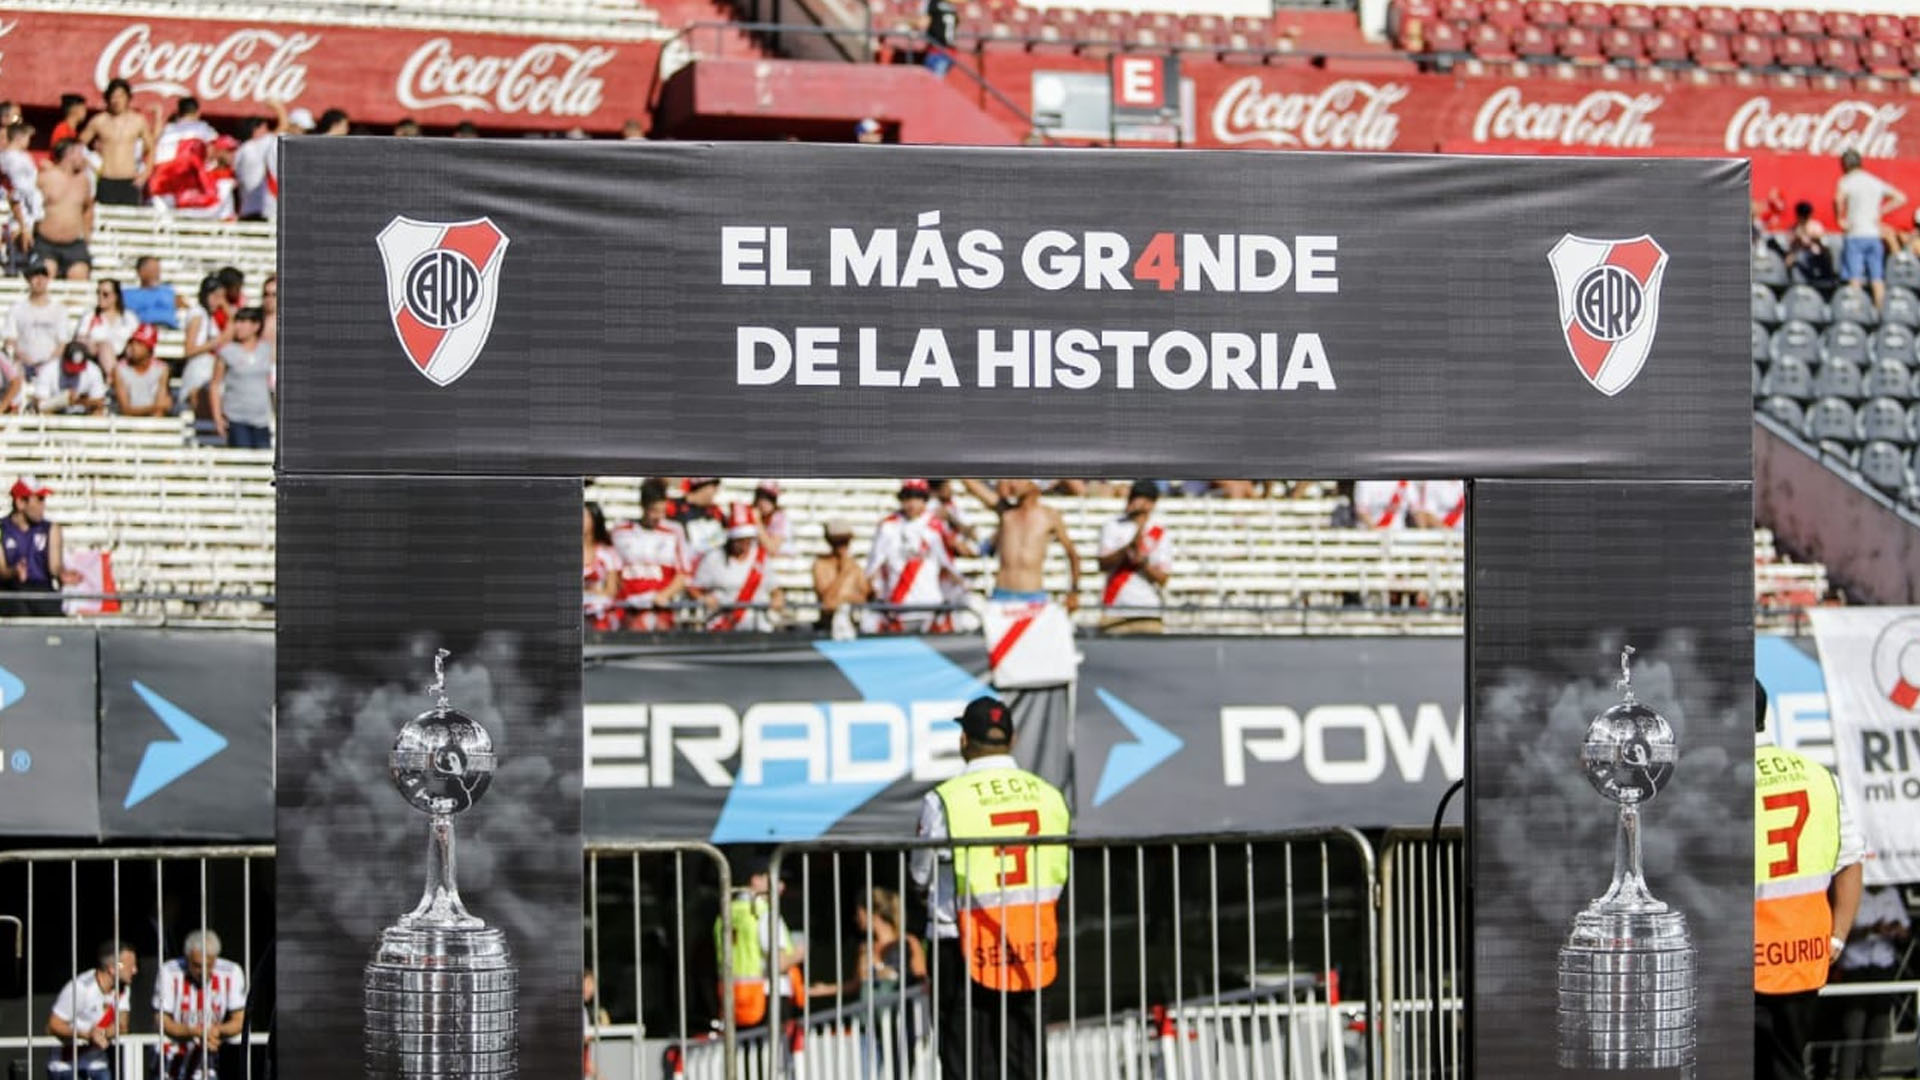 The absentees, Rafael Santos Borré, Franco Armani and Juanfer Quintero, who traveled directly to Colombia, were also named to blow up the stadium with their only mention. In the distance they vibrate with a great celebration